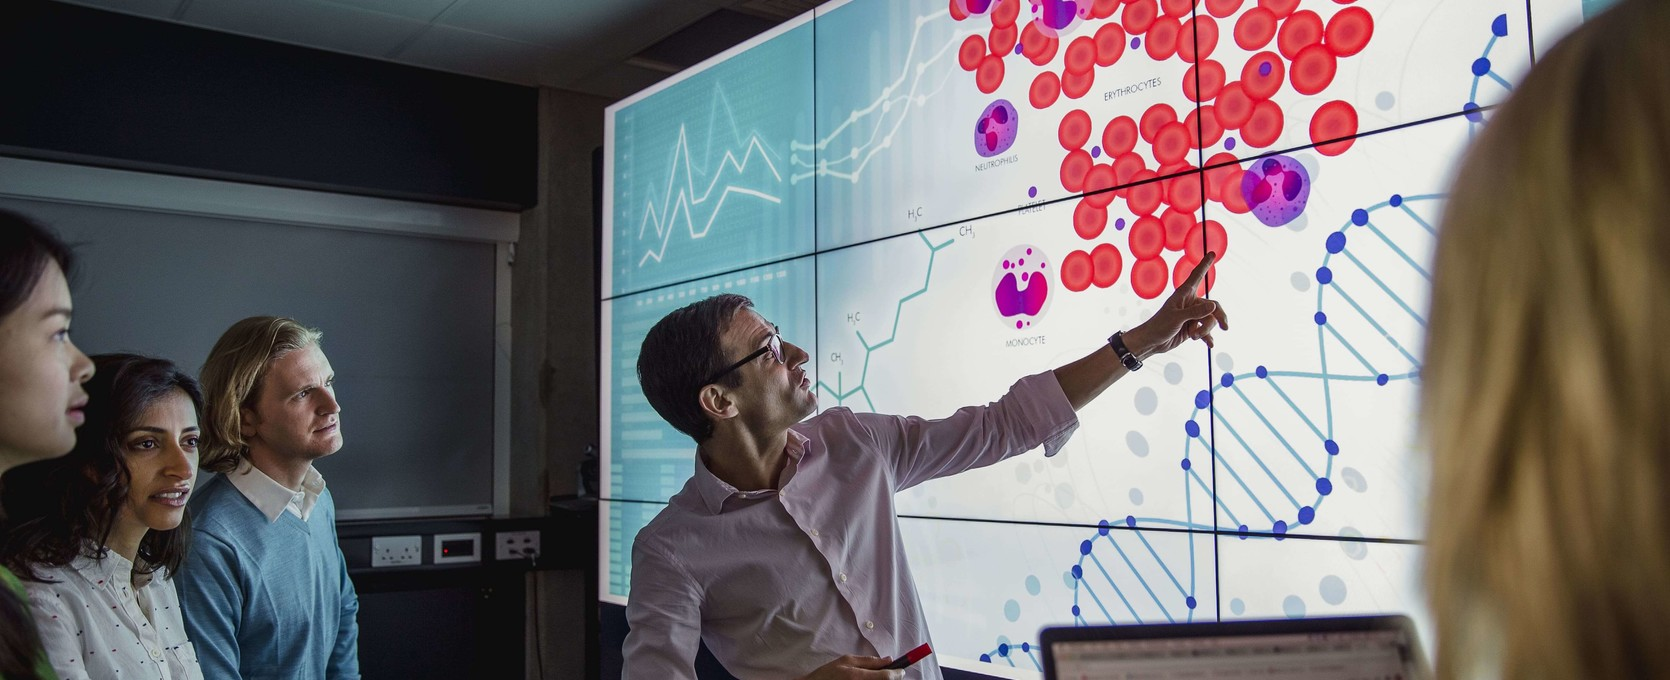 Healthcare professionals reviewing life sciences data dashboard